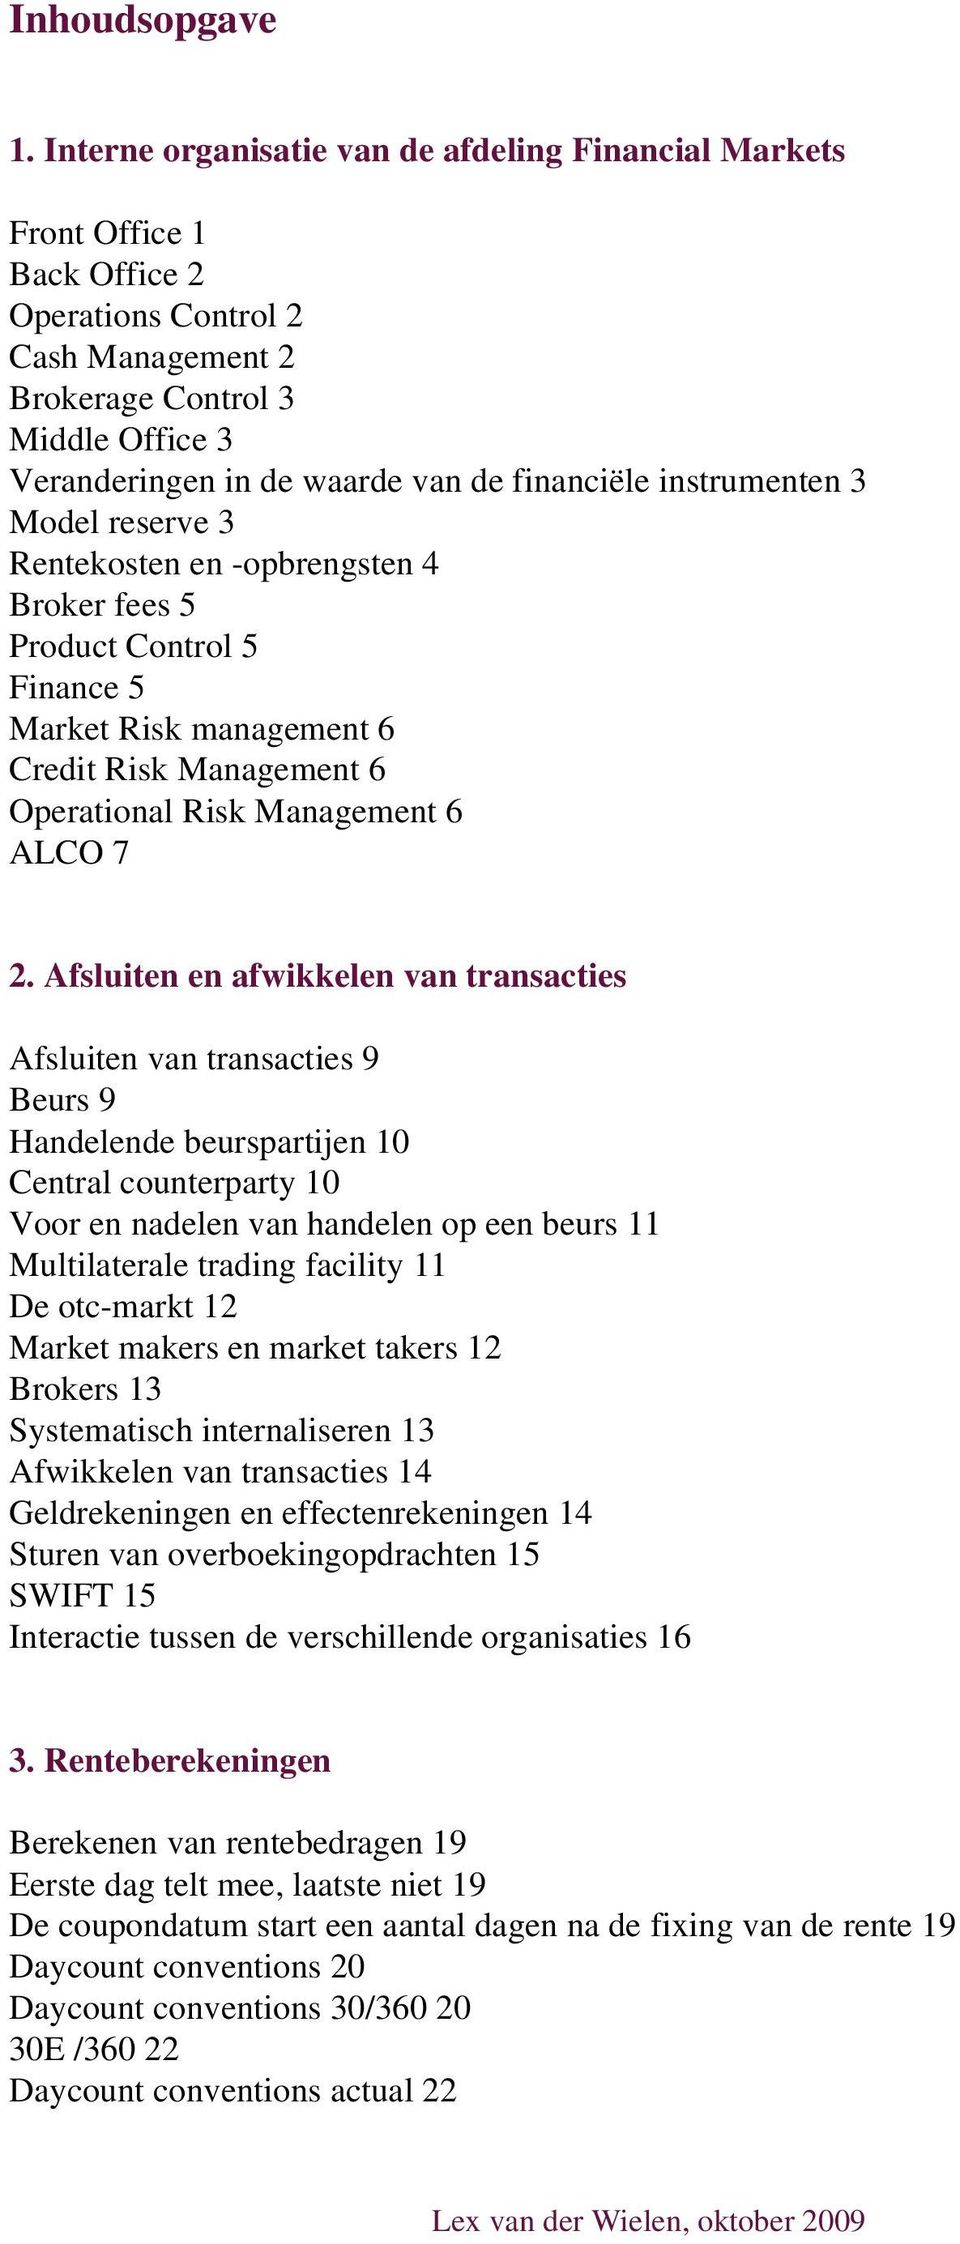 financiële instrumenten 3 Model reserve 3 Rentekosten en -opbrengsten 4 Broker fees 5 Product Control 5 Finance 5 Market Risk management 6 Credit Risk Management 6 Operational Risk Management 6 ALCO